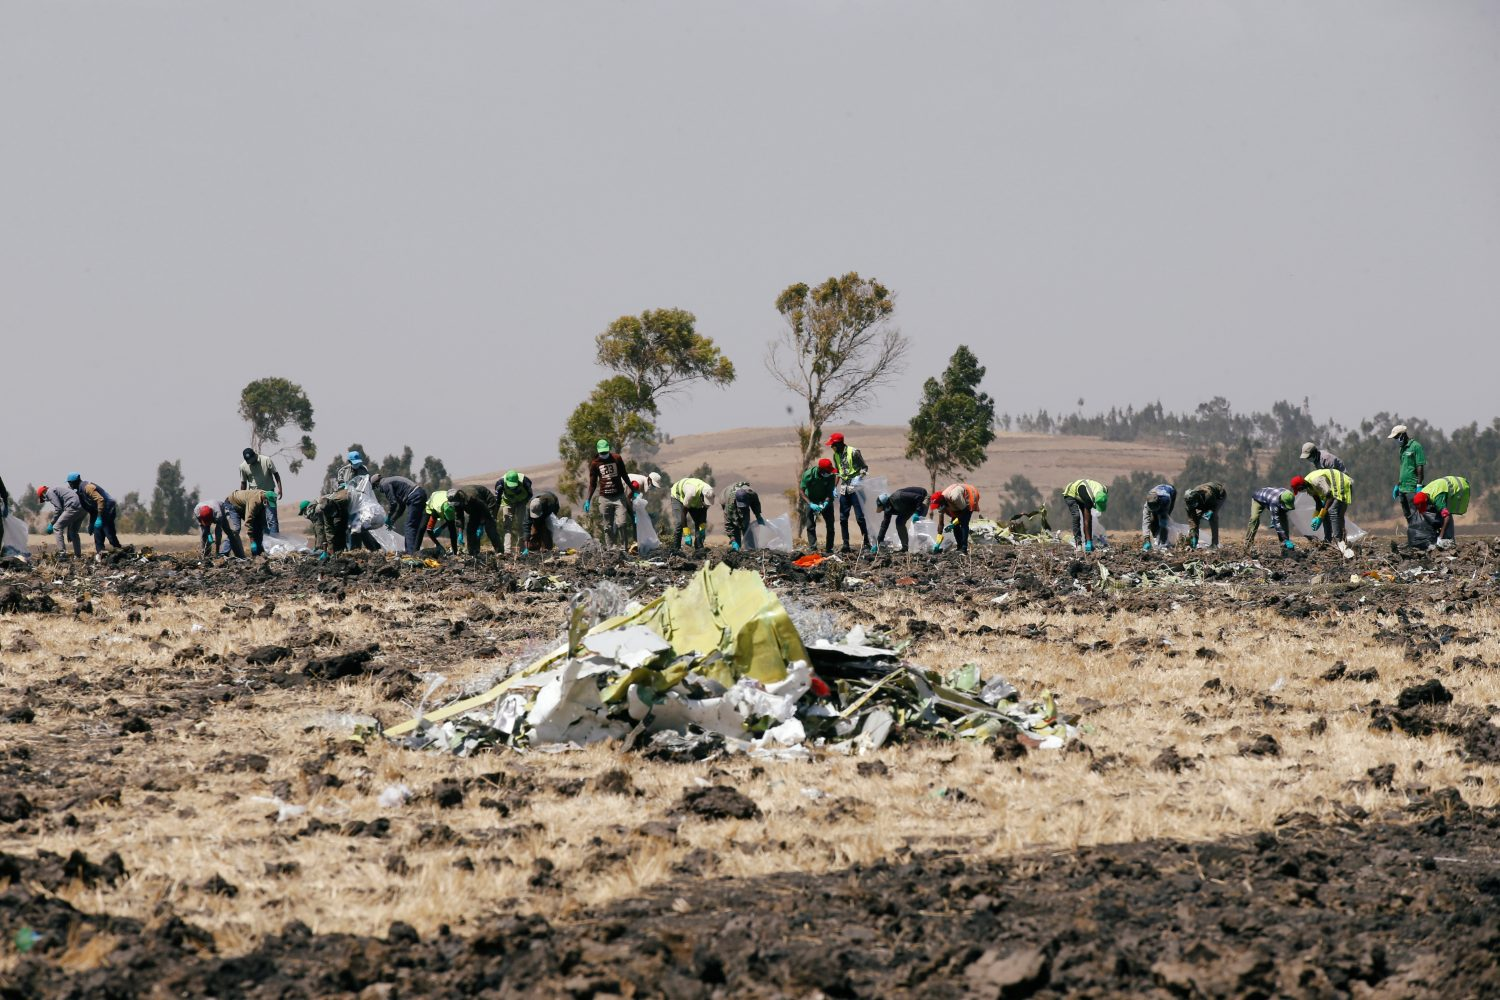 FILE PHOTO: Ethiopians search for remains at the Ethiopian Airlines Flight ET 302 plane crash before a commemoration ceremony at the scene of the crash, near the town of Bishoftu, southeast of Addis Ababa, Ethiopia March 13, 2019. REUTERS/Baz Ratner